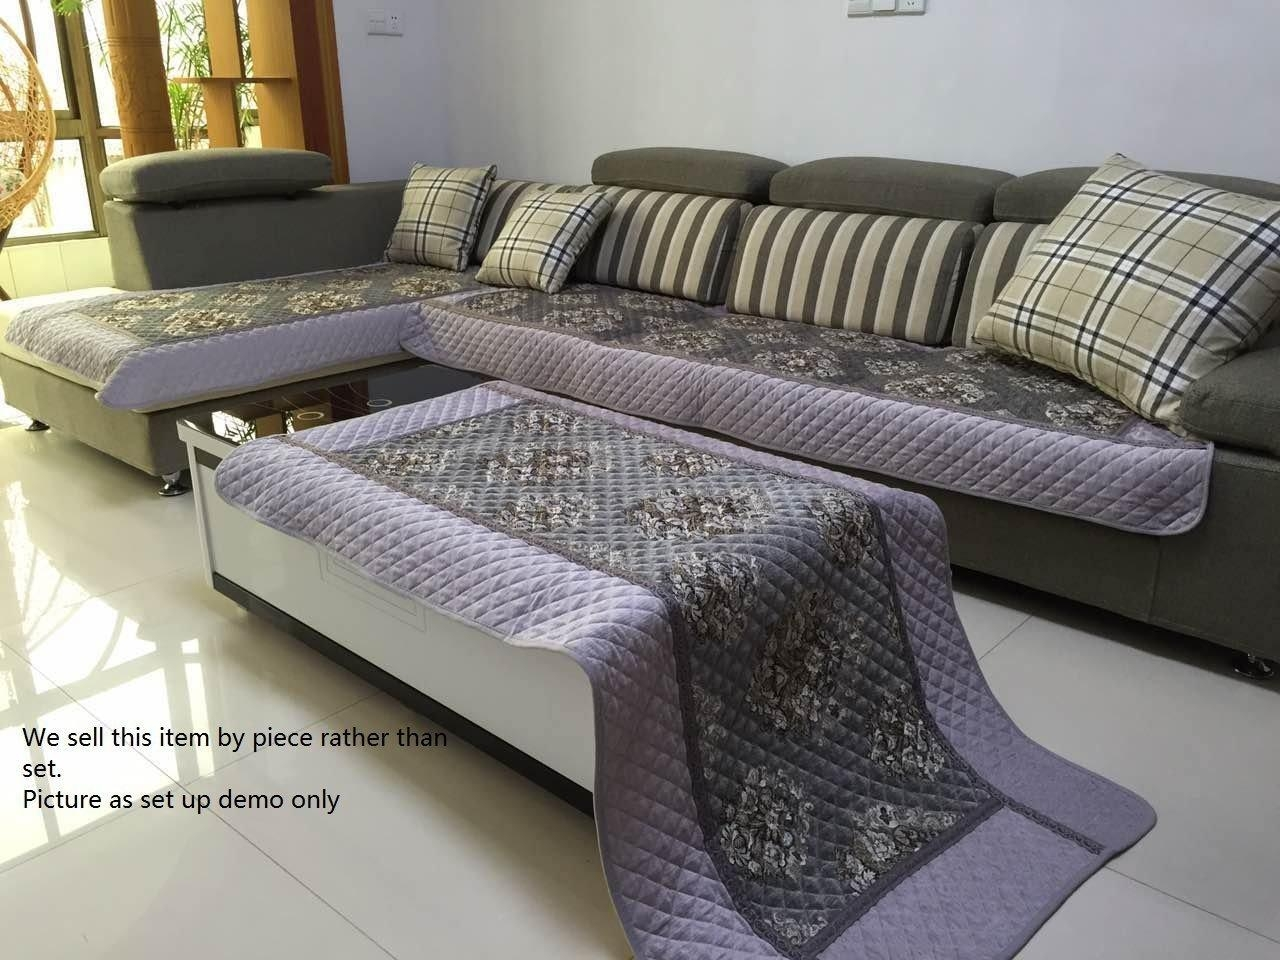 Sofa Covers For Sectional | Sofa Gallery | Kengire Inside Sofas Cover For Sectional Sofas (Image 14 of 20)